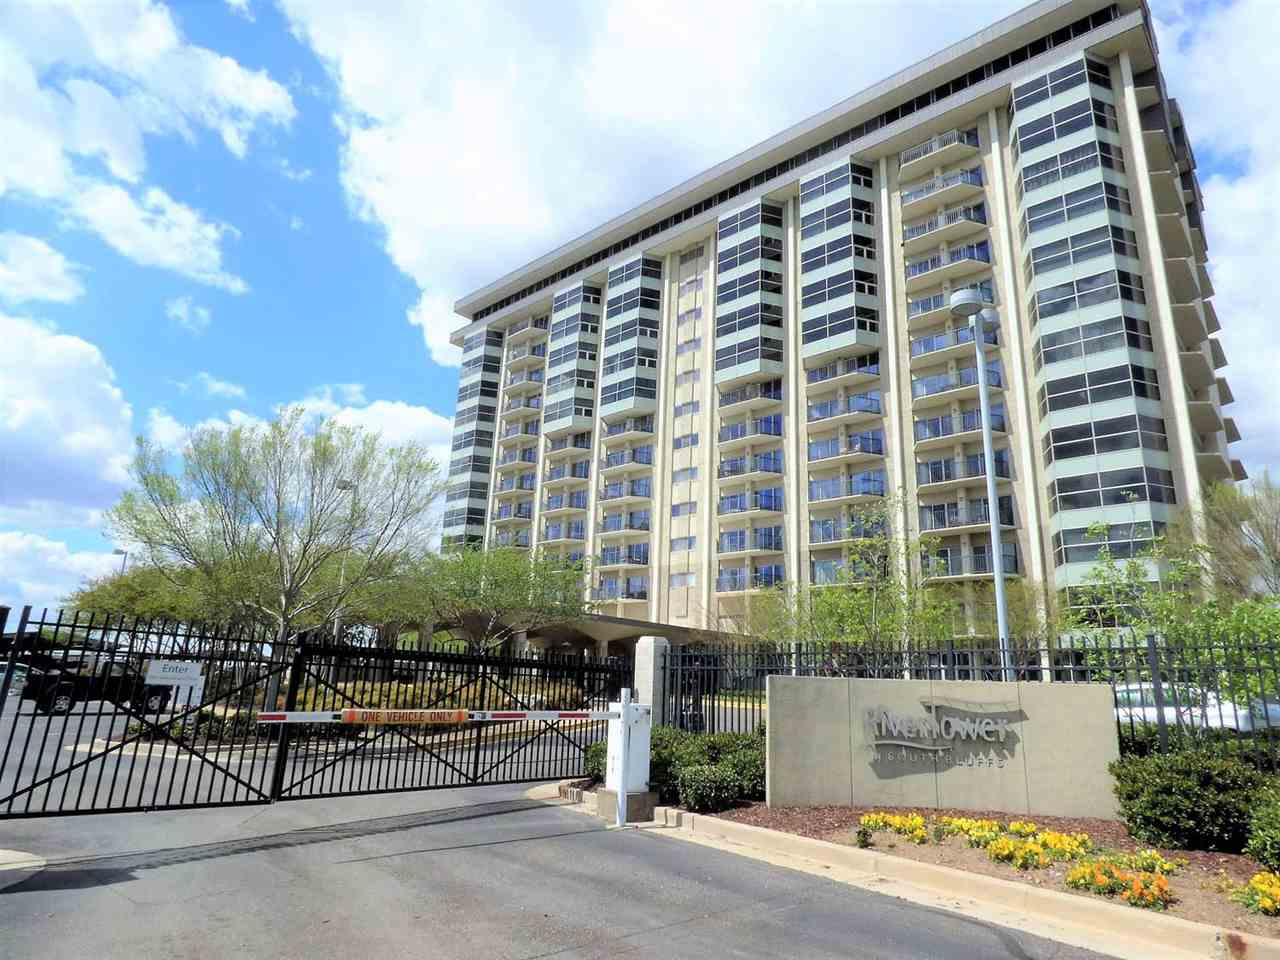 Motivated Seller! Open to all reasonable offers. River Tower at South Bluffs condo. Stunning views of the river and downtown skyline. Updated 1 BR, 1 BA condo.  Granite kitchen countertops. Stainless appliances. Newly renovated bath. Fresh interior paint. Attractive hardwoods. Covered parking #86 A.  All utilities and HVAC maintenance included in HOA. Amenities include a gated entry, 24-hr on site security, fitness and yoga rooms, lighted tennis court, Olympic-sized pool, Dog run.